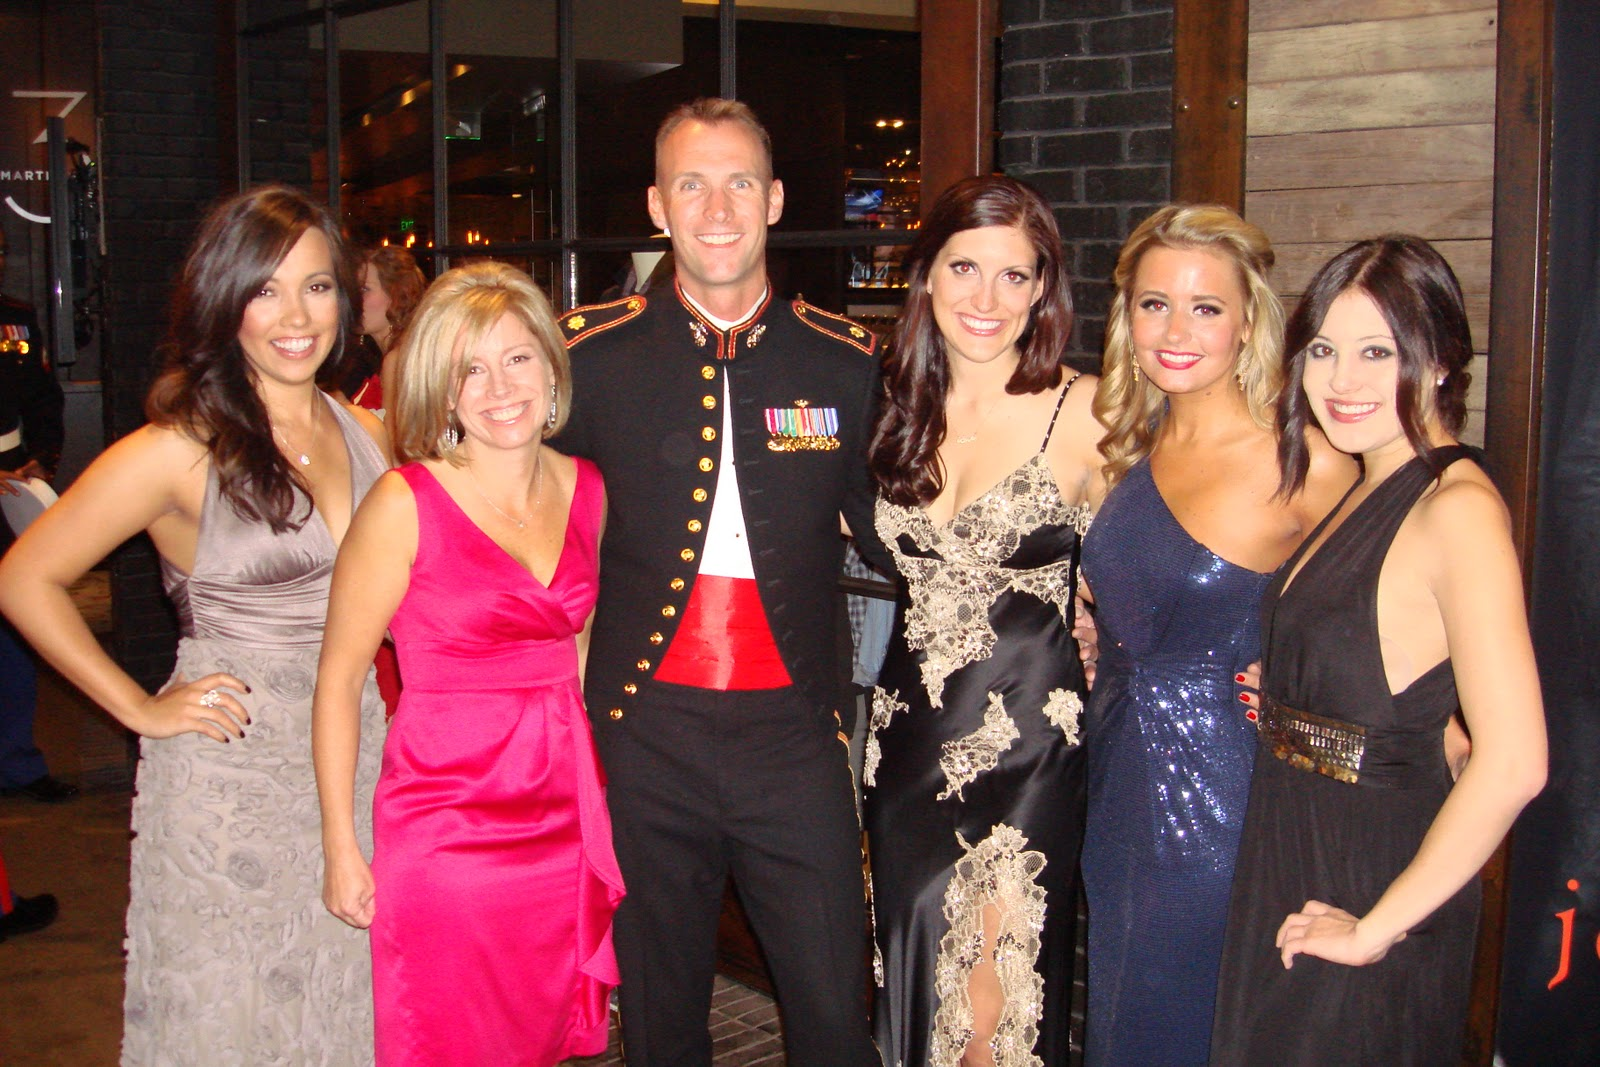 Marine Corps Birthday Ball Dresses | Dress images